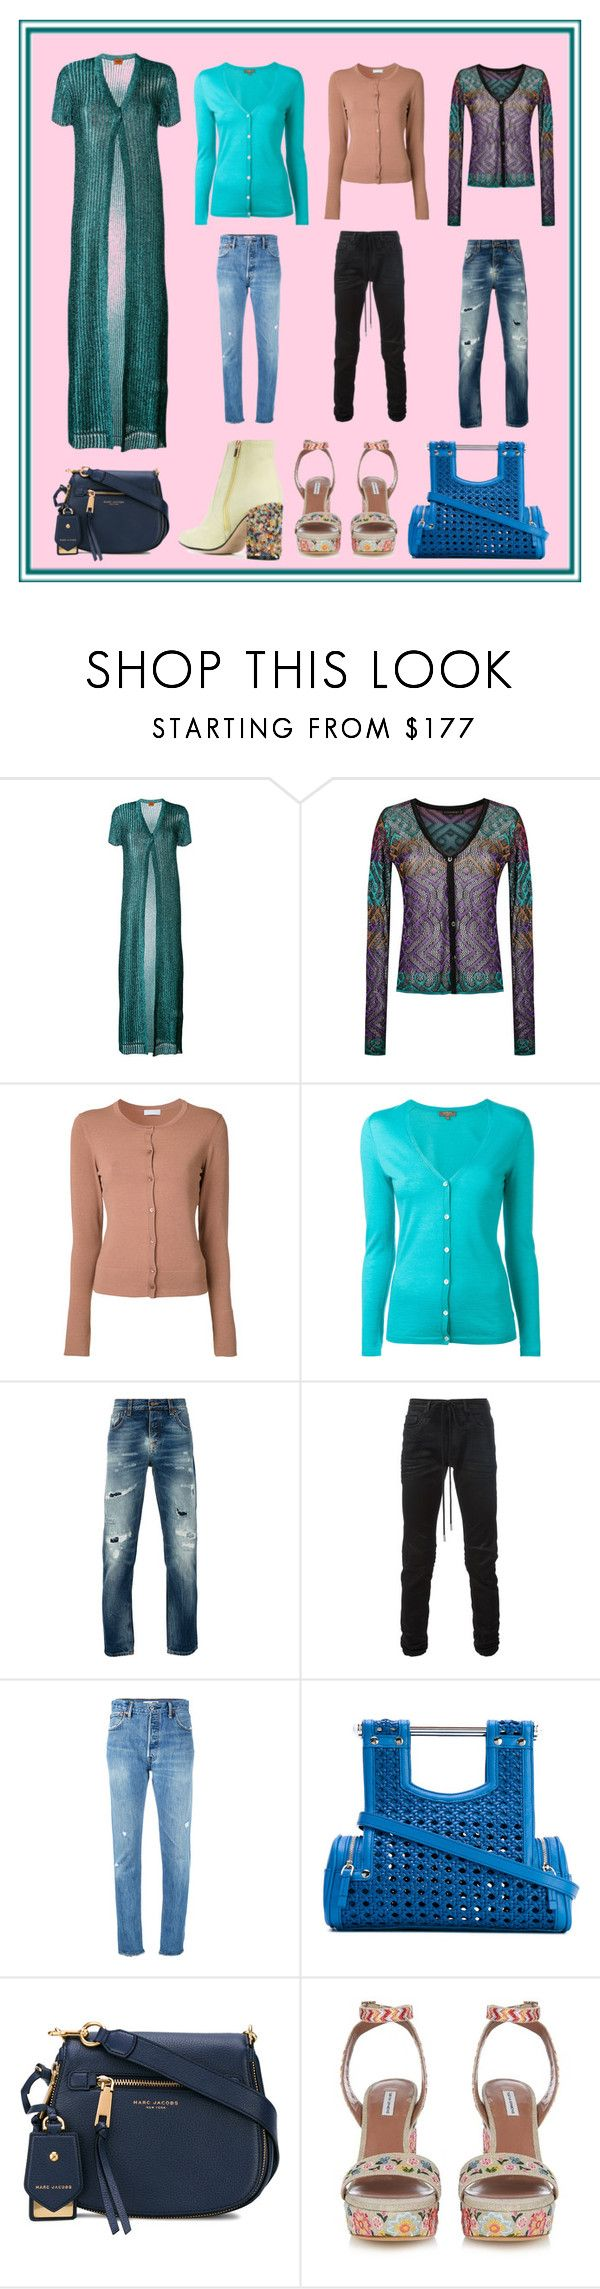 """""""Fashion Nation..."""" by cate-jennifer ❤ liked on Polyvore featuring Missoni, Cecilia Pradomurion, Estnation, N.Peal, Nudie Jeans Co., Off-White, RE/DONE, Corto Moltedo, Marc Jacobs and vintage"""